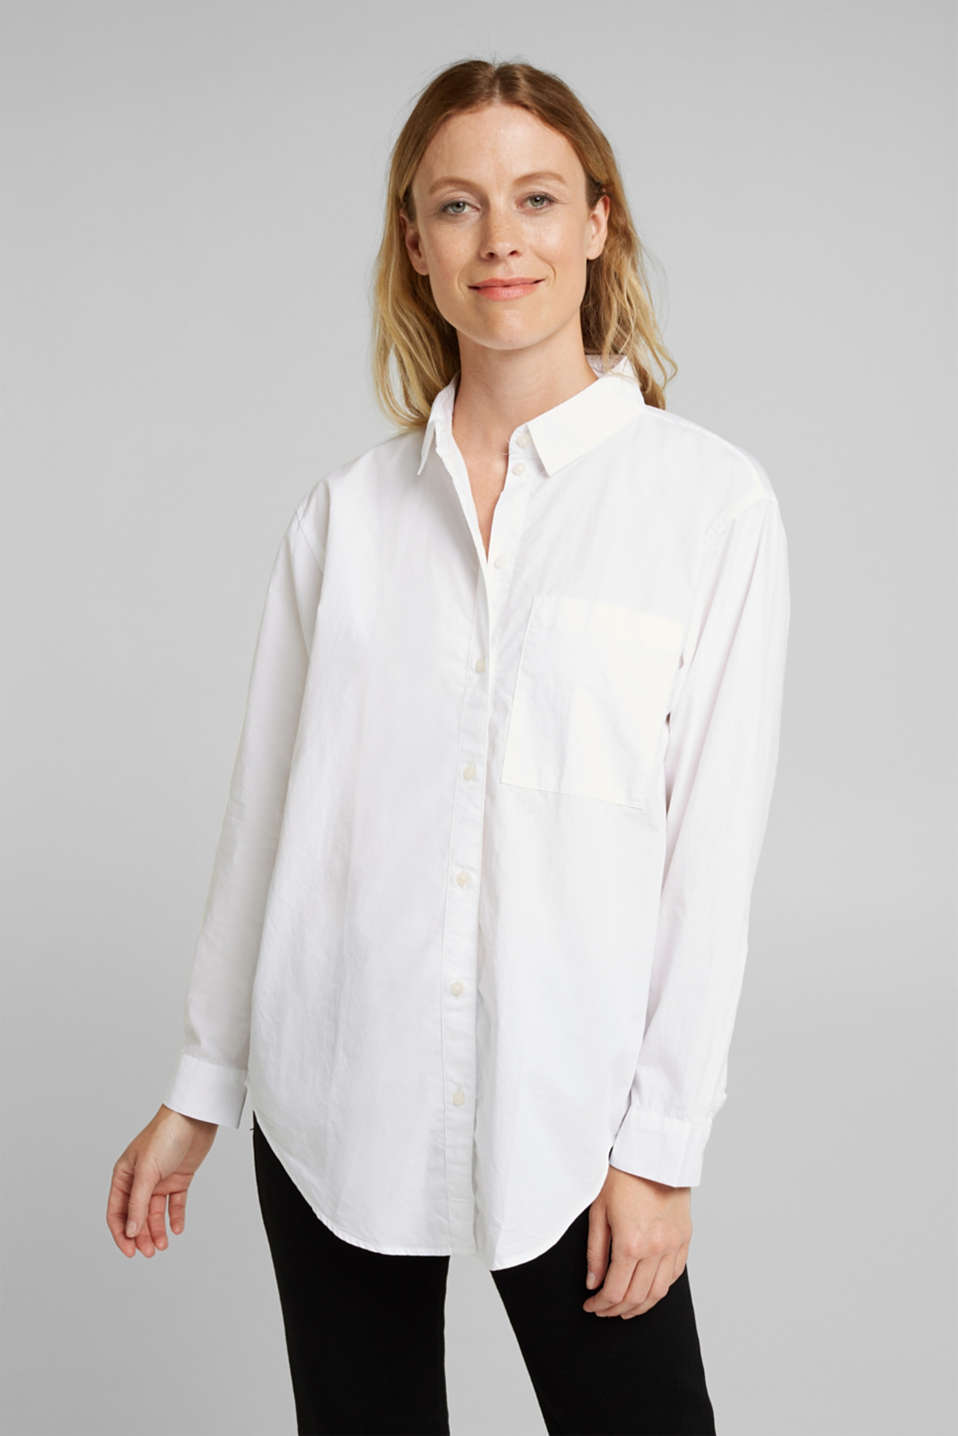 Esprit - Blouse made of 100% organic cotton